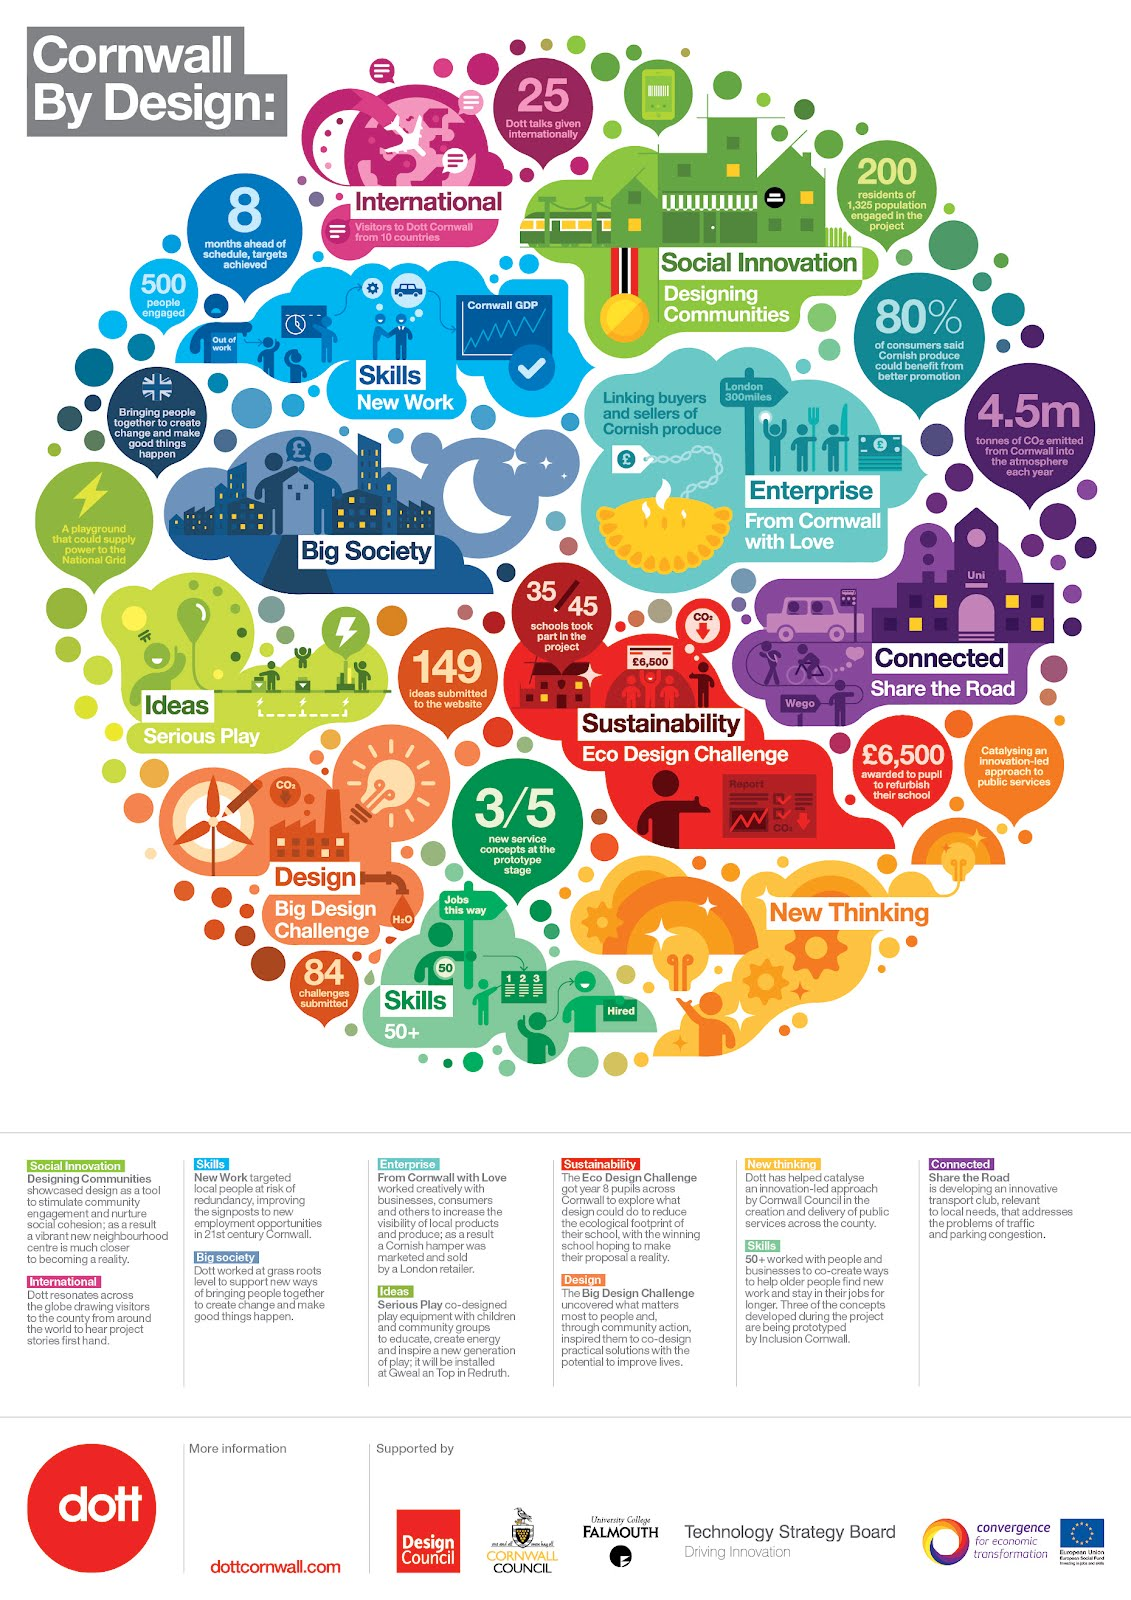 This Dott infographic, Cornwall by Design, visualizes everything the